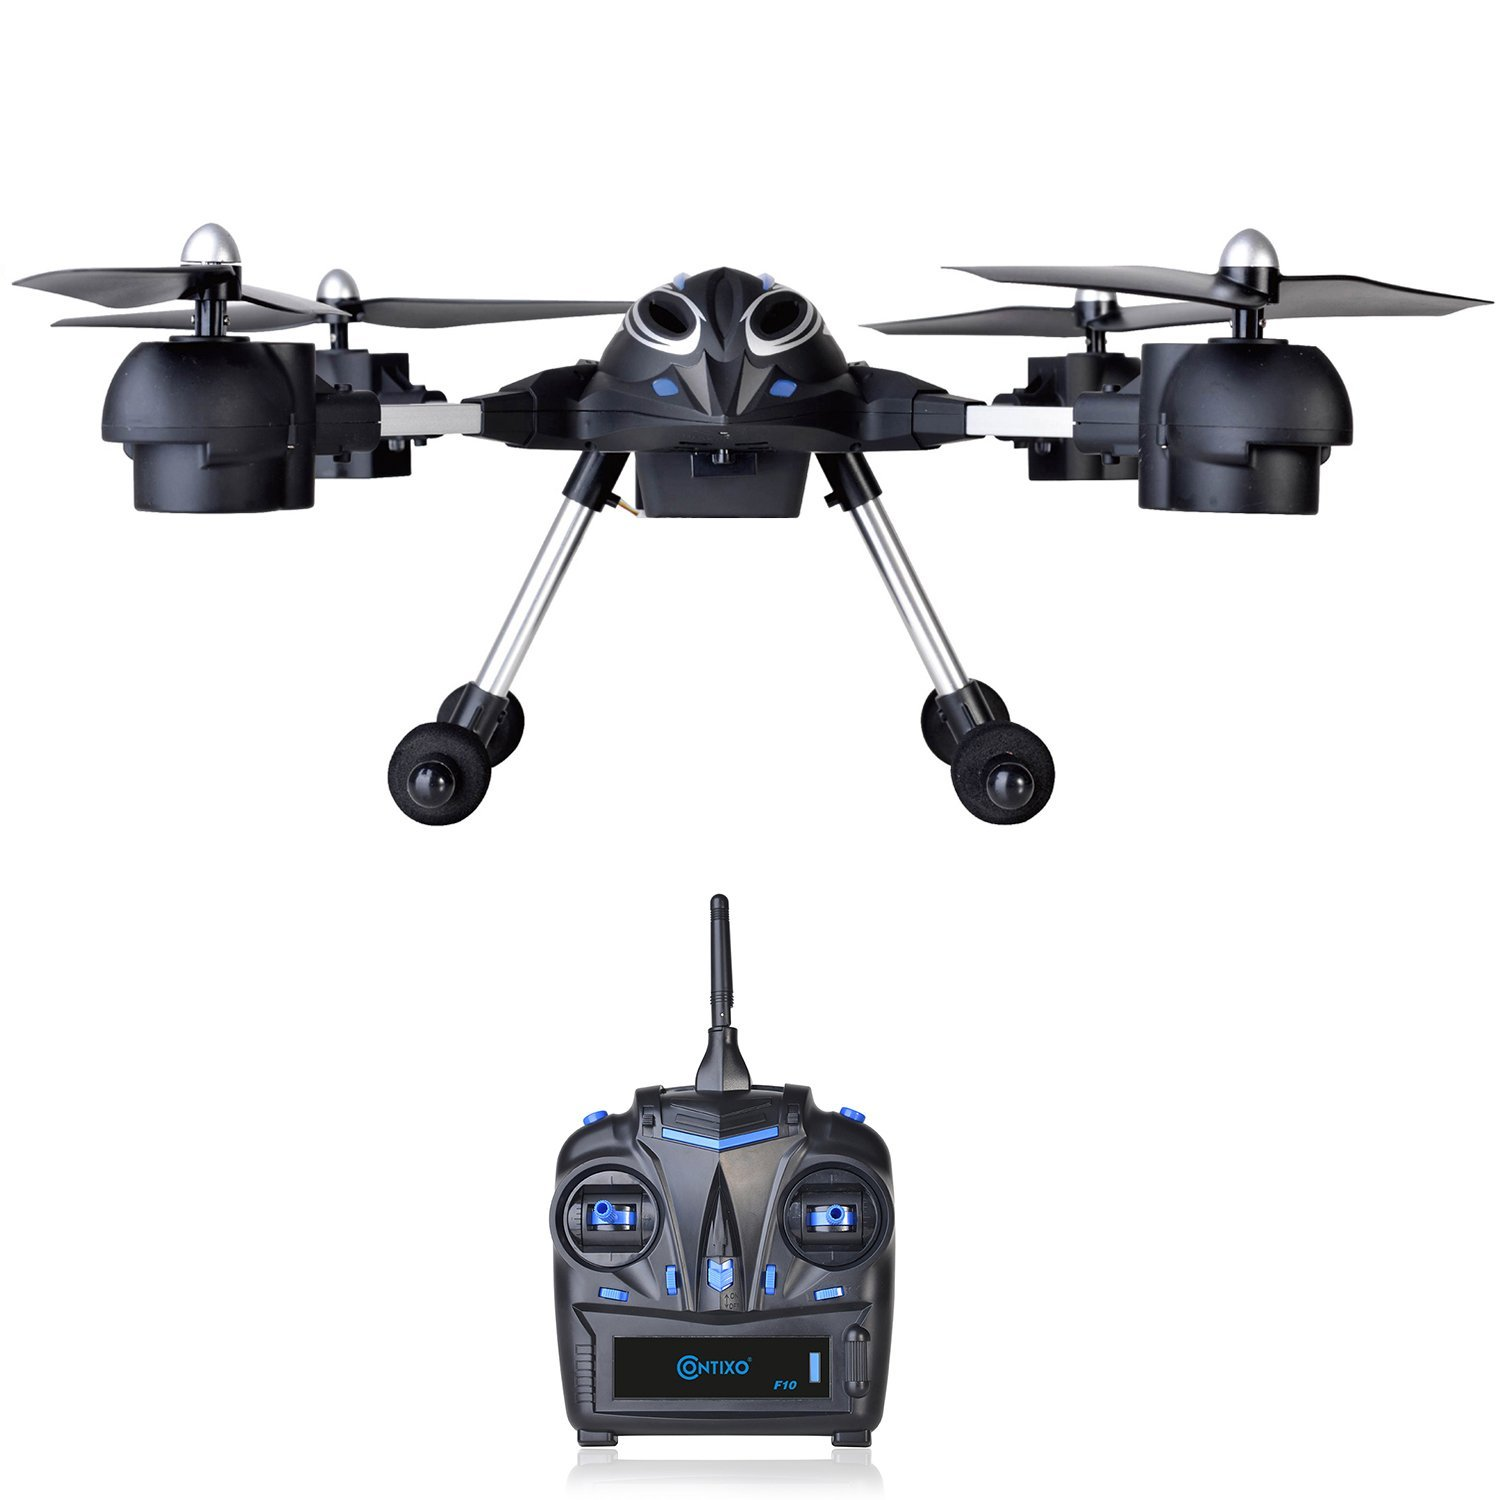 Contixo F10 Quadcopter RC Drone, 4 Channel, 2.4GHz, 6 Axis Gyro RTF, Support GoPro